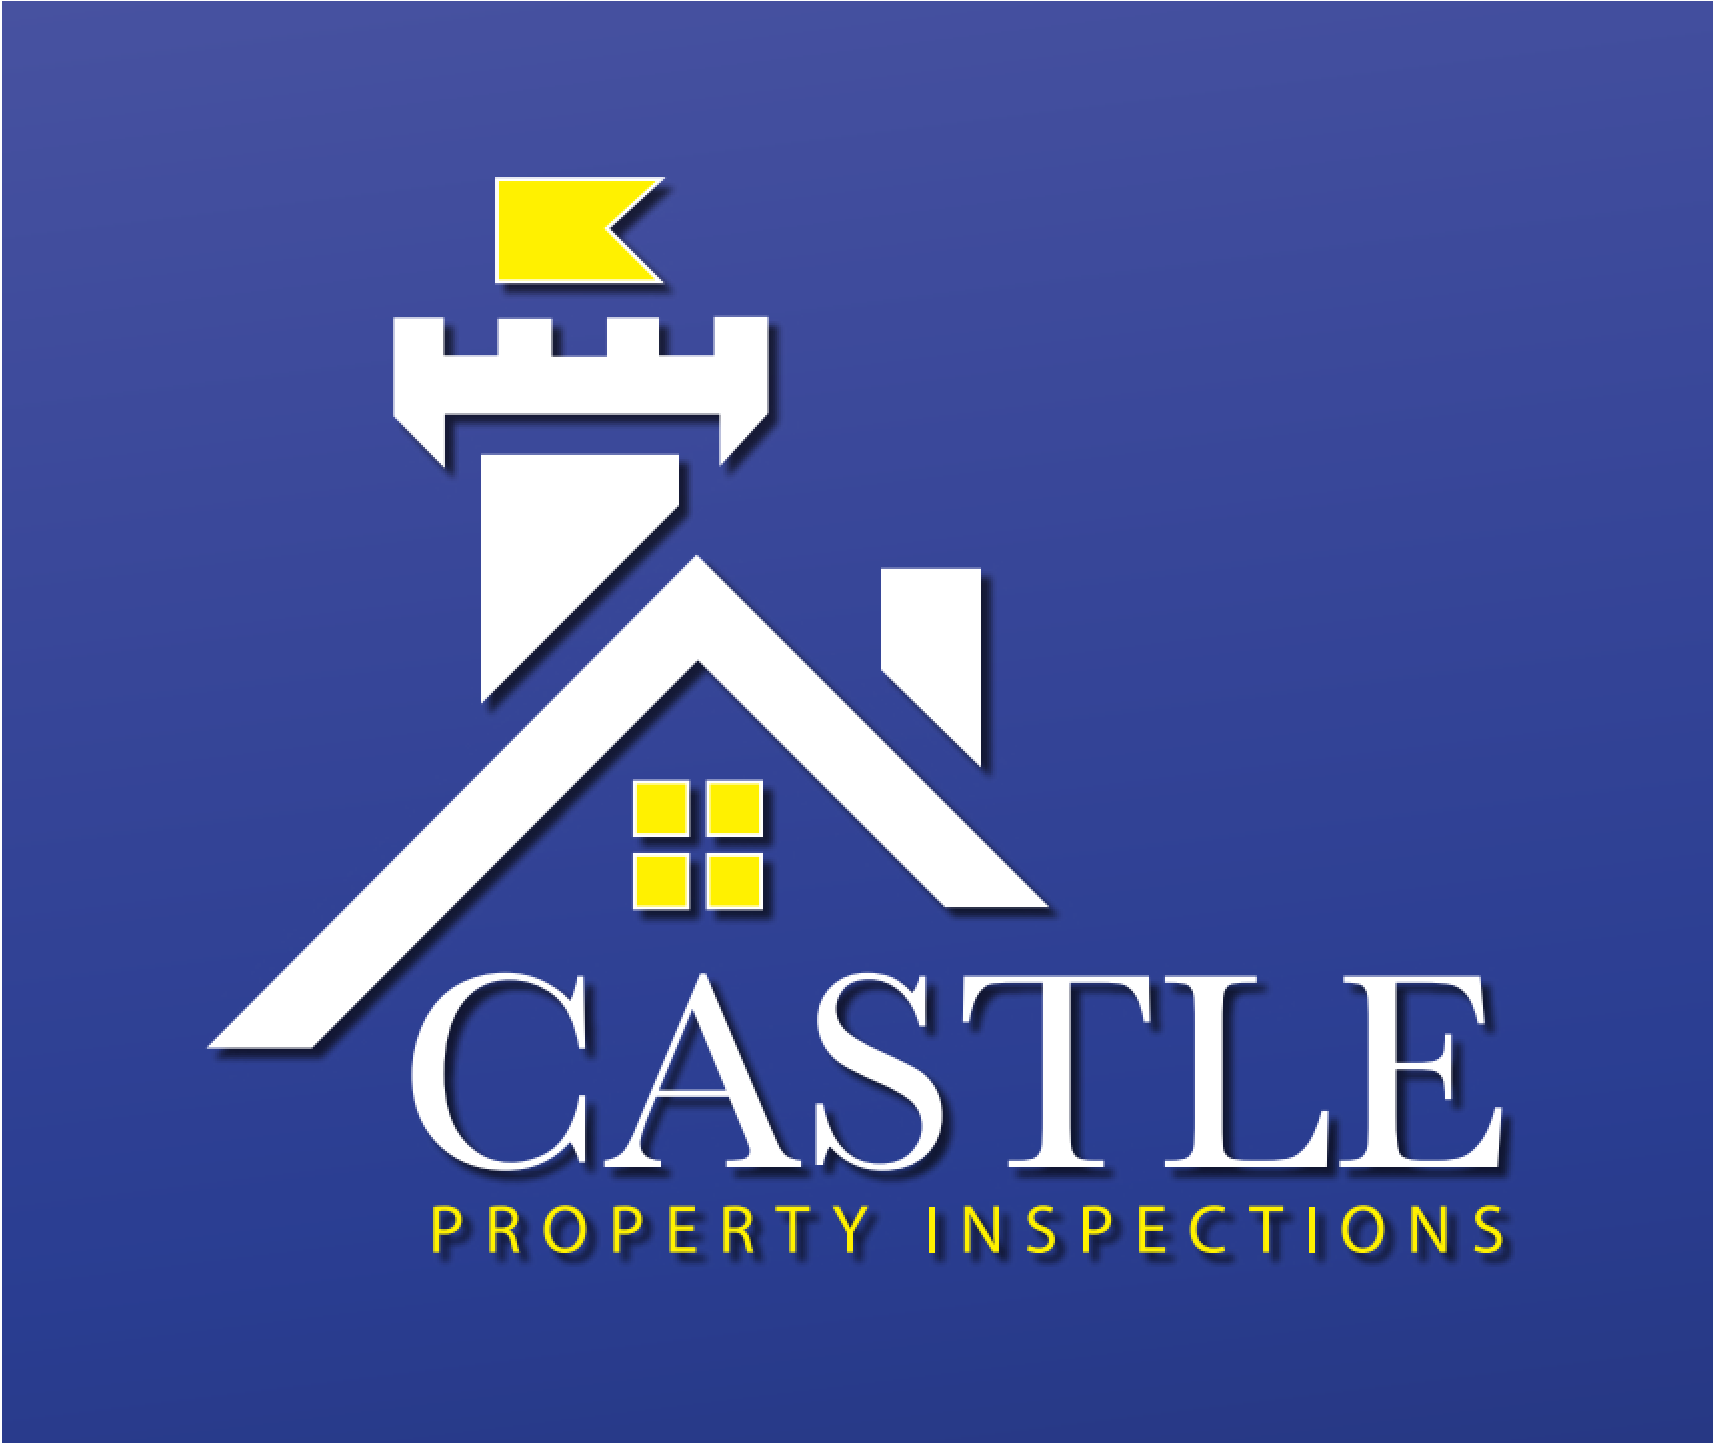 Castle Property Inspections